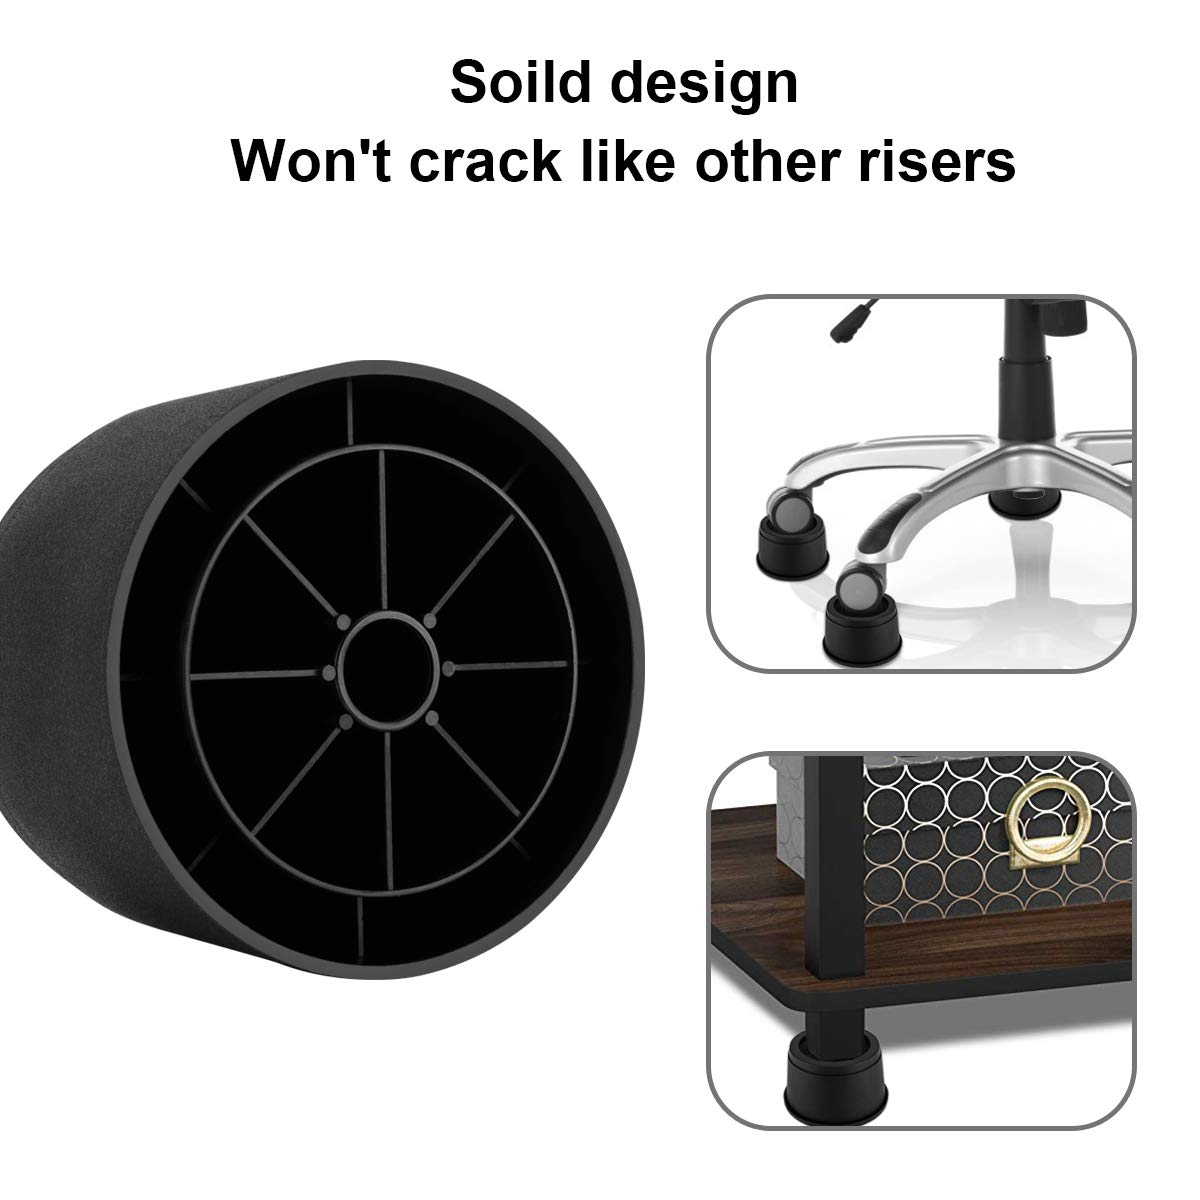 Table and Couch 4 Pack, Round BTSD-home 3 Inch Heavy Duty Bed Riser Adjustable Bed Lift Fits to All Wheels of Furniture Sofa